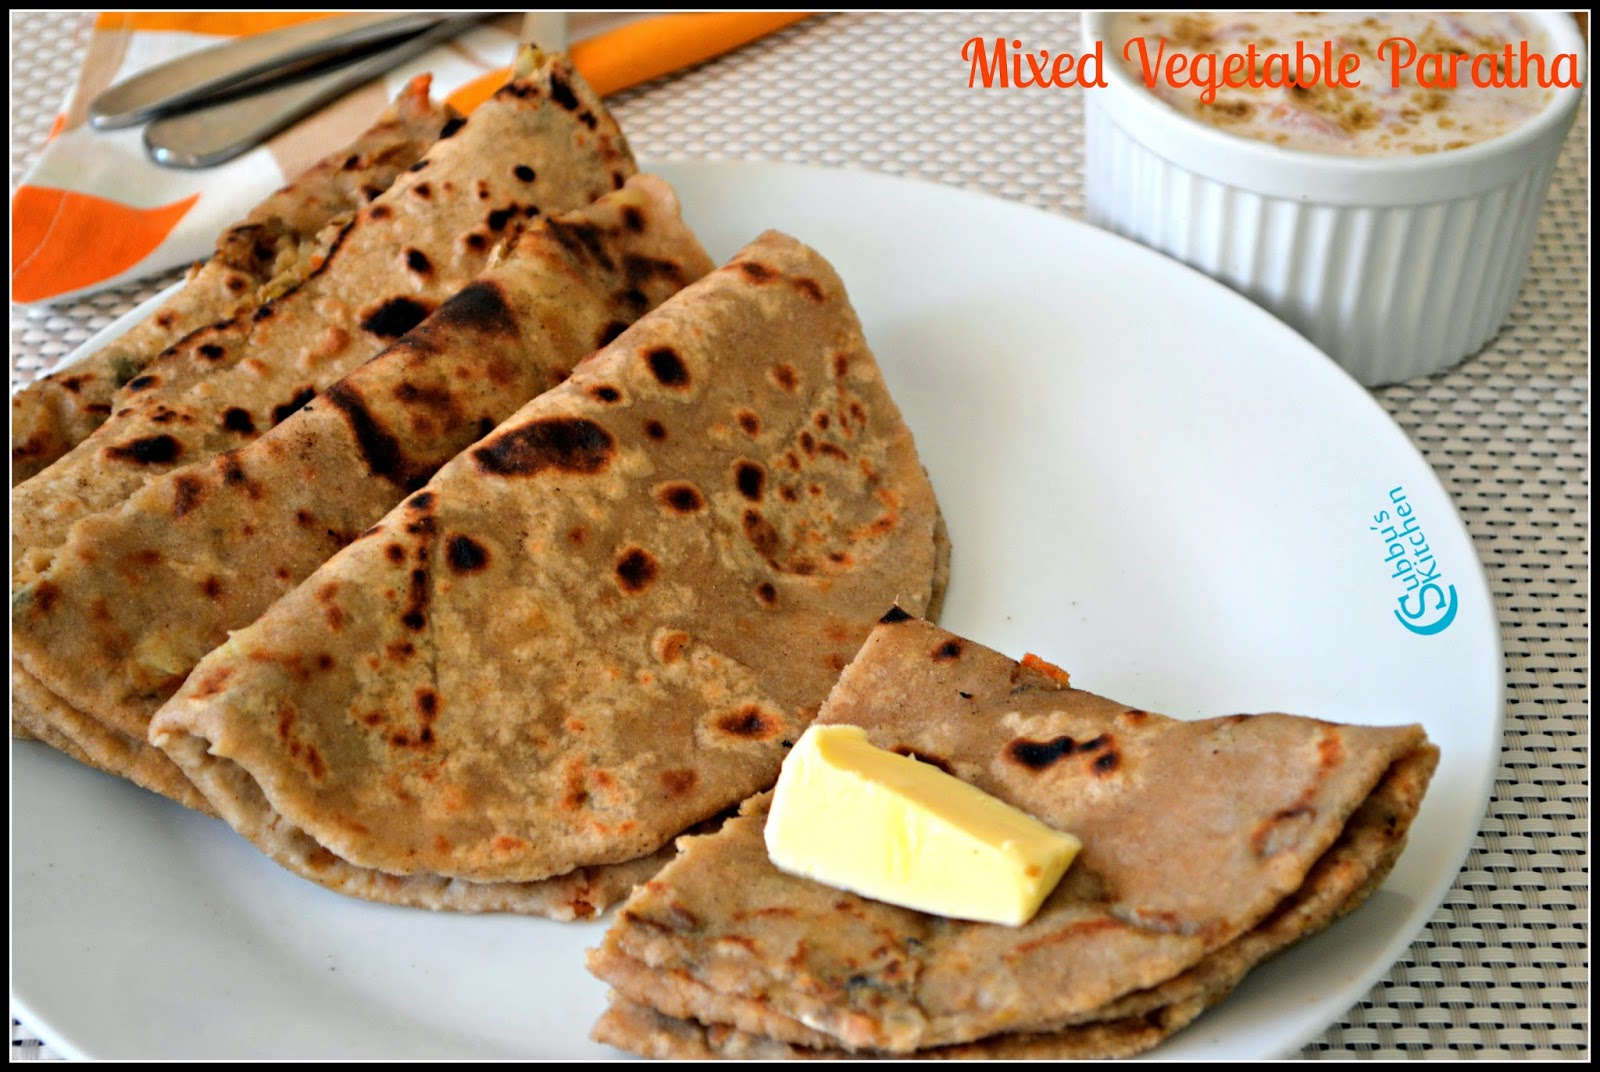 Mixed Vegetable Paratha Recipe | Subbus Kitchen